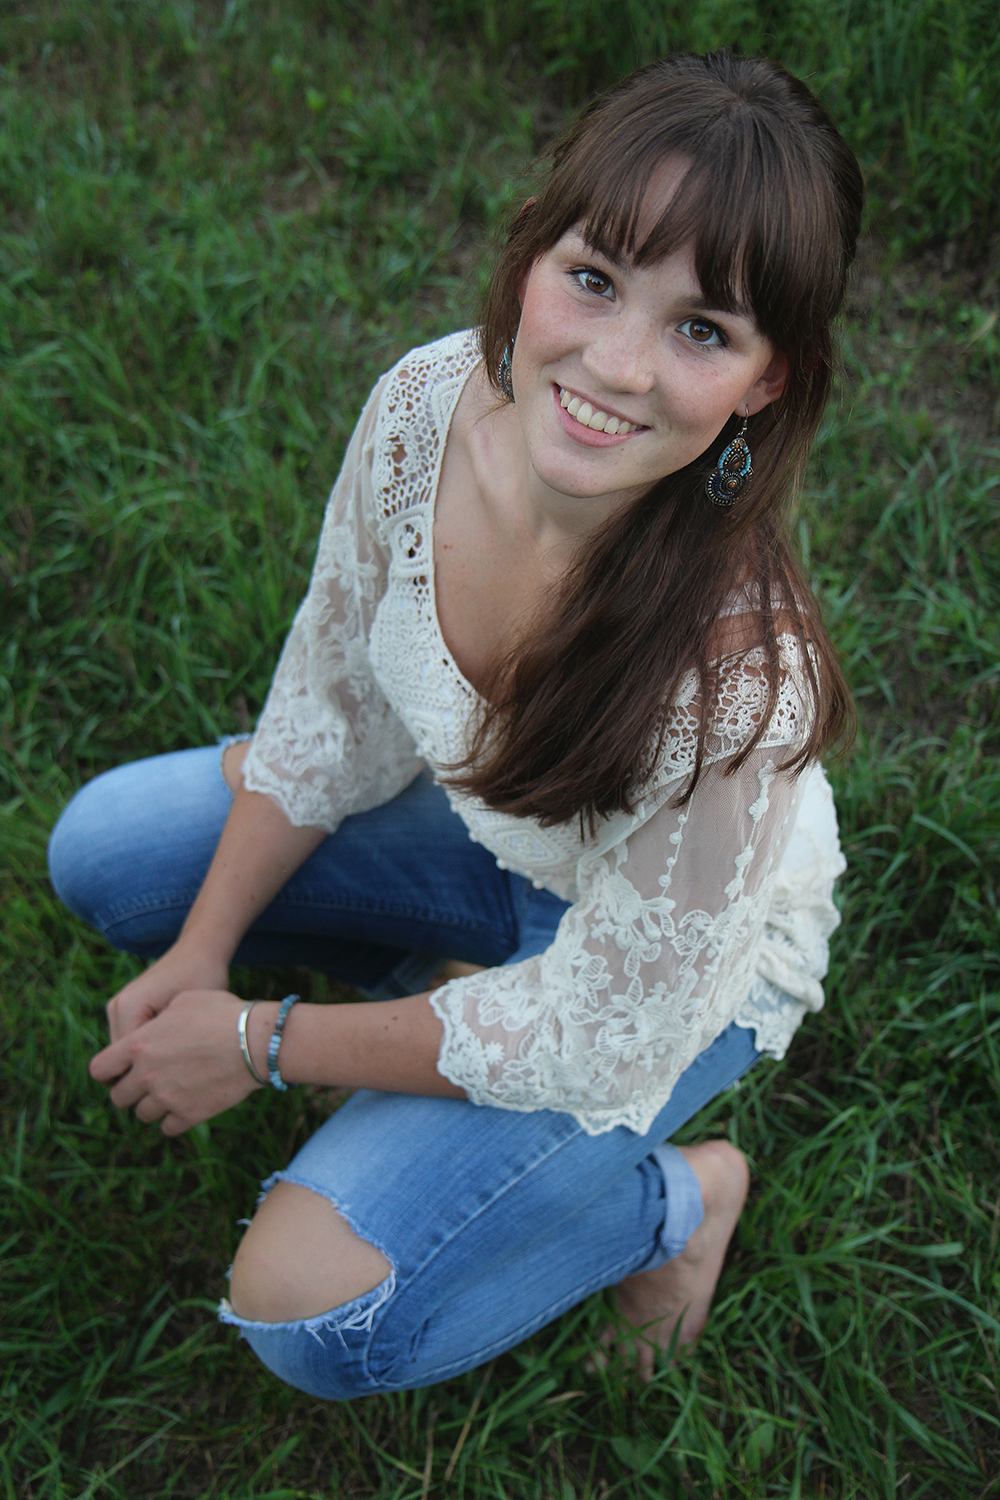 Benzie Central senior portrait senior photo Lauren Church Benzie Central High School aubrey ann parker photography